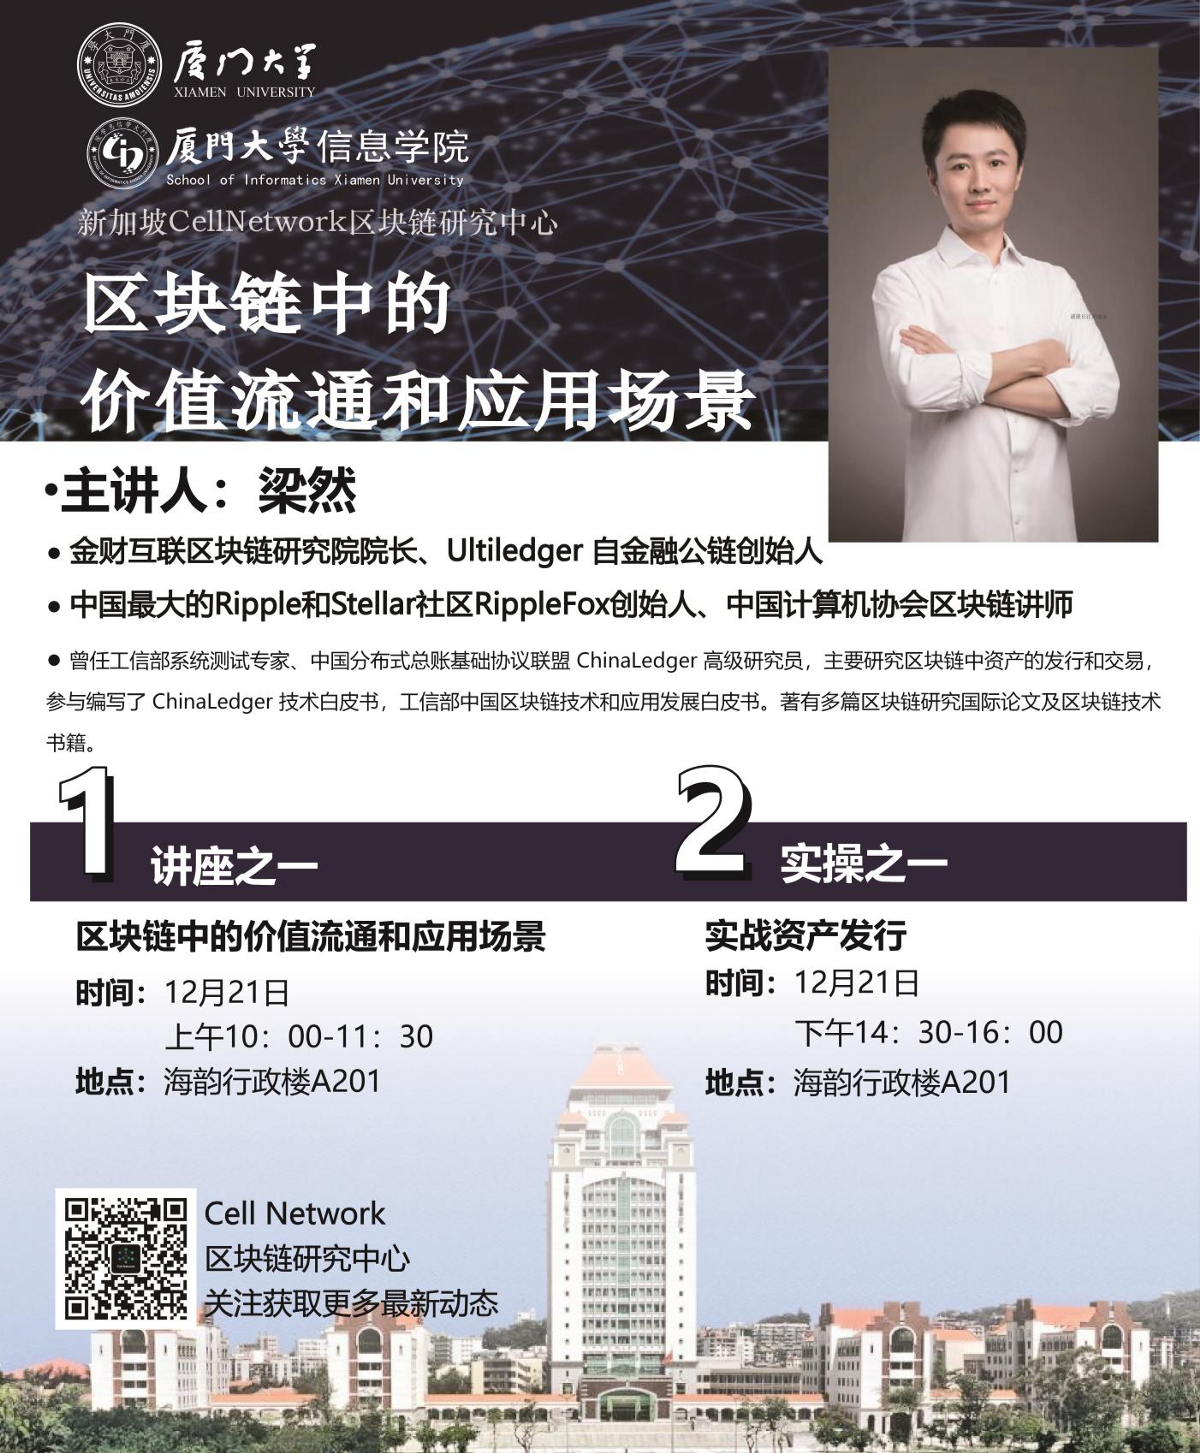 Ultiledger founder Randolf Liang will give a lecture at the Xiamen University in Dec 21st 2019